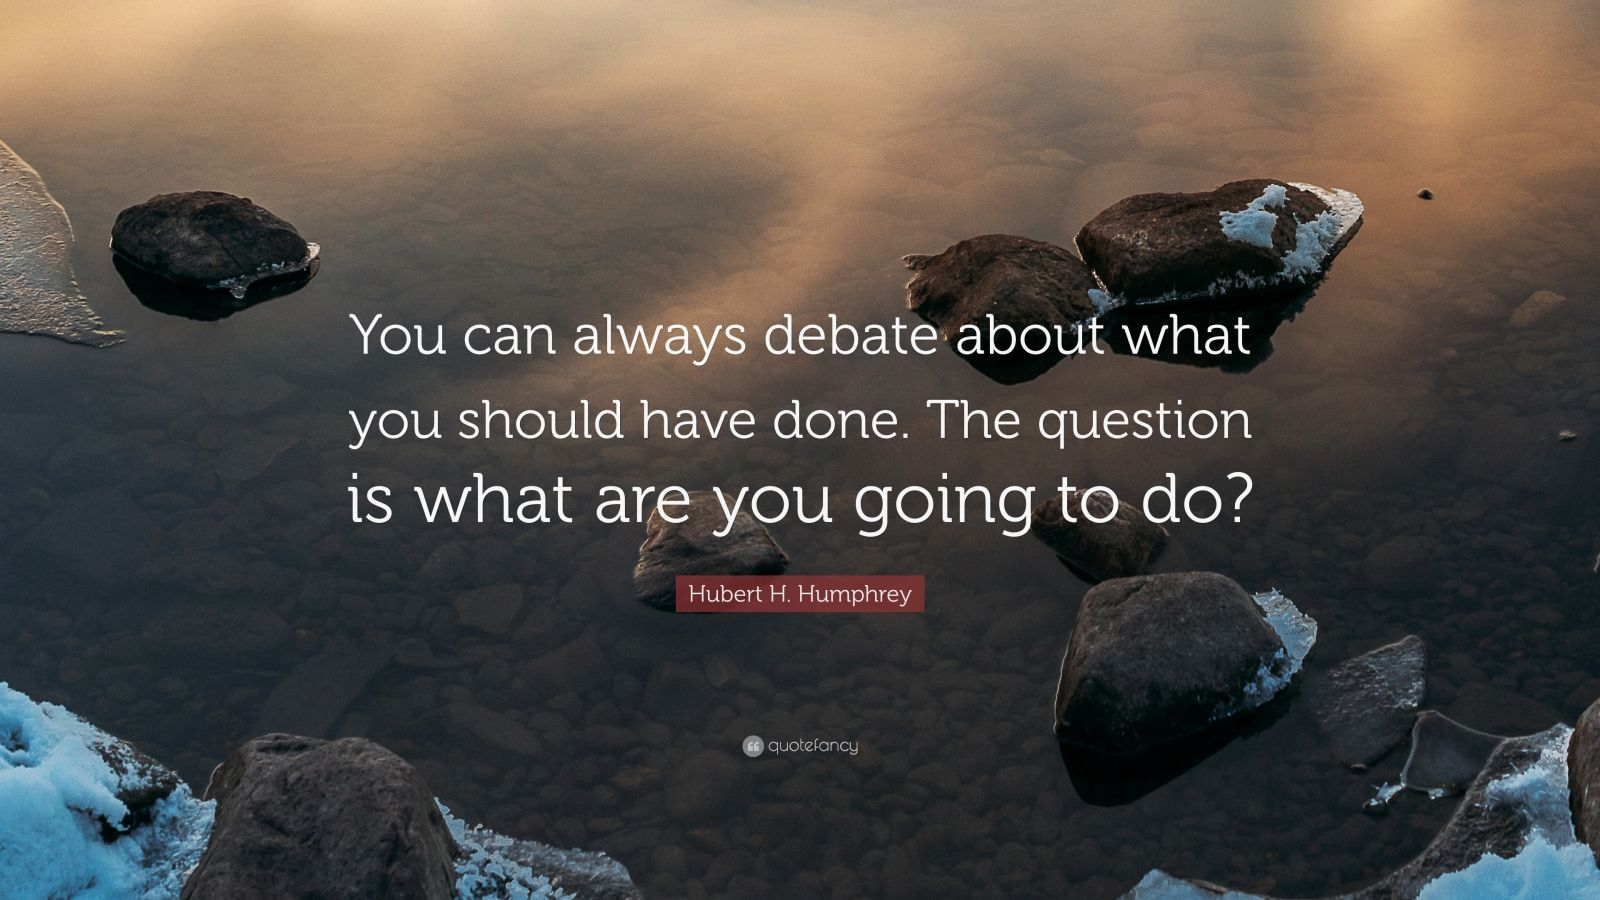 """Hubert H. Humphrey Quote: """"You can always debate about what you should have done. The question is what are you going to do?"""""""